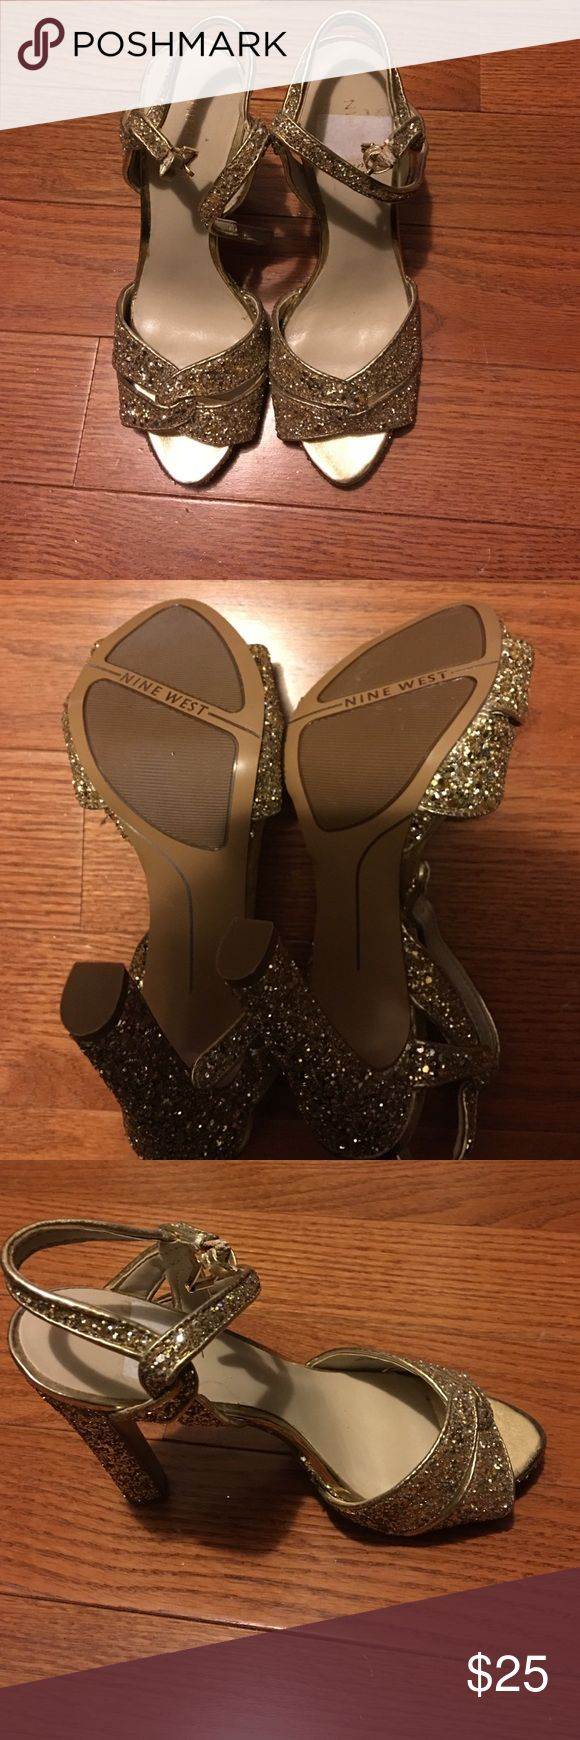 Nine West Size 7 open toe heels. Glittery Gold Open toe heels. Never worn! Nine West Shoes Heels